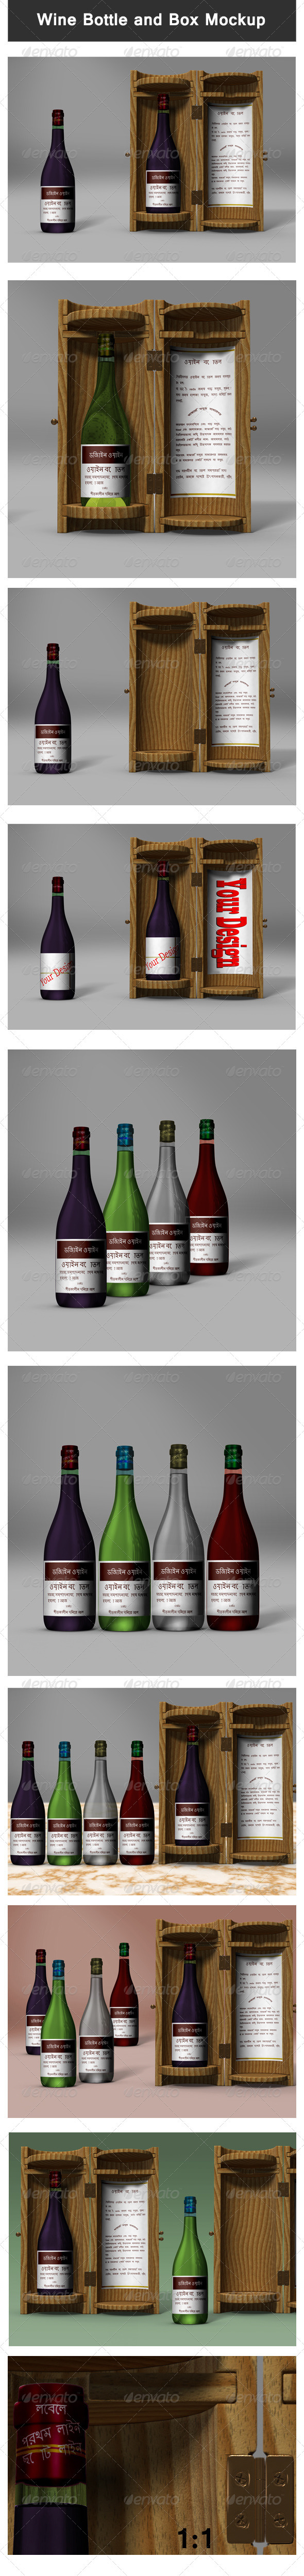 GraphicRiver Wine Bottle and Box Mock-up 3280310